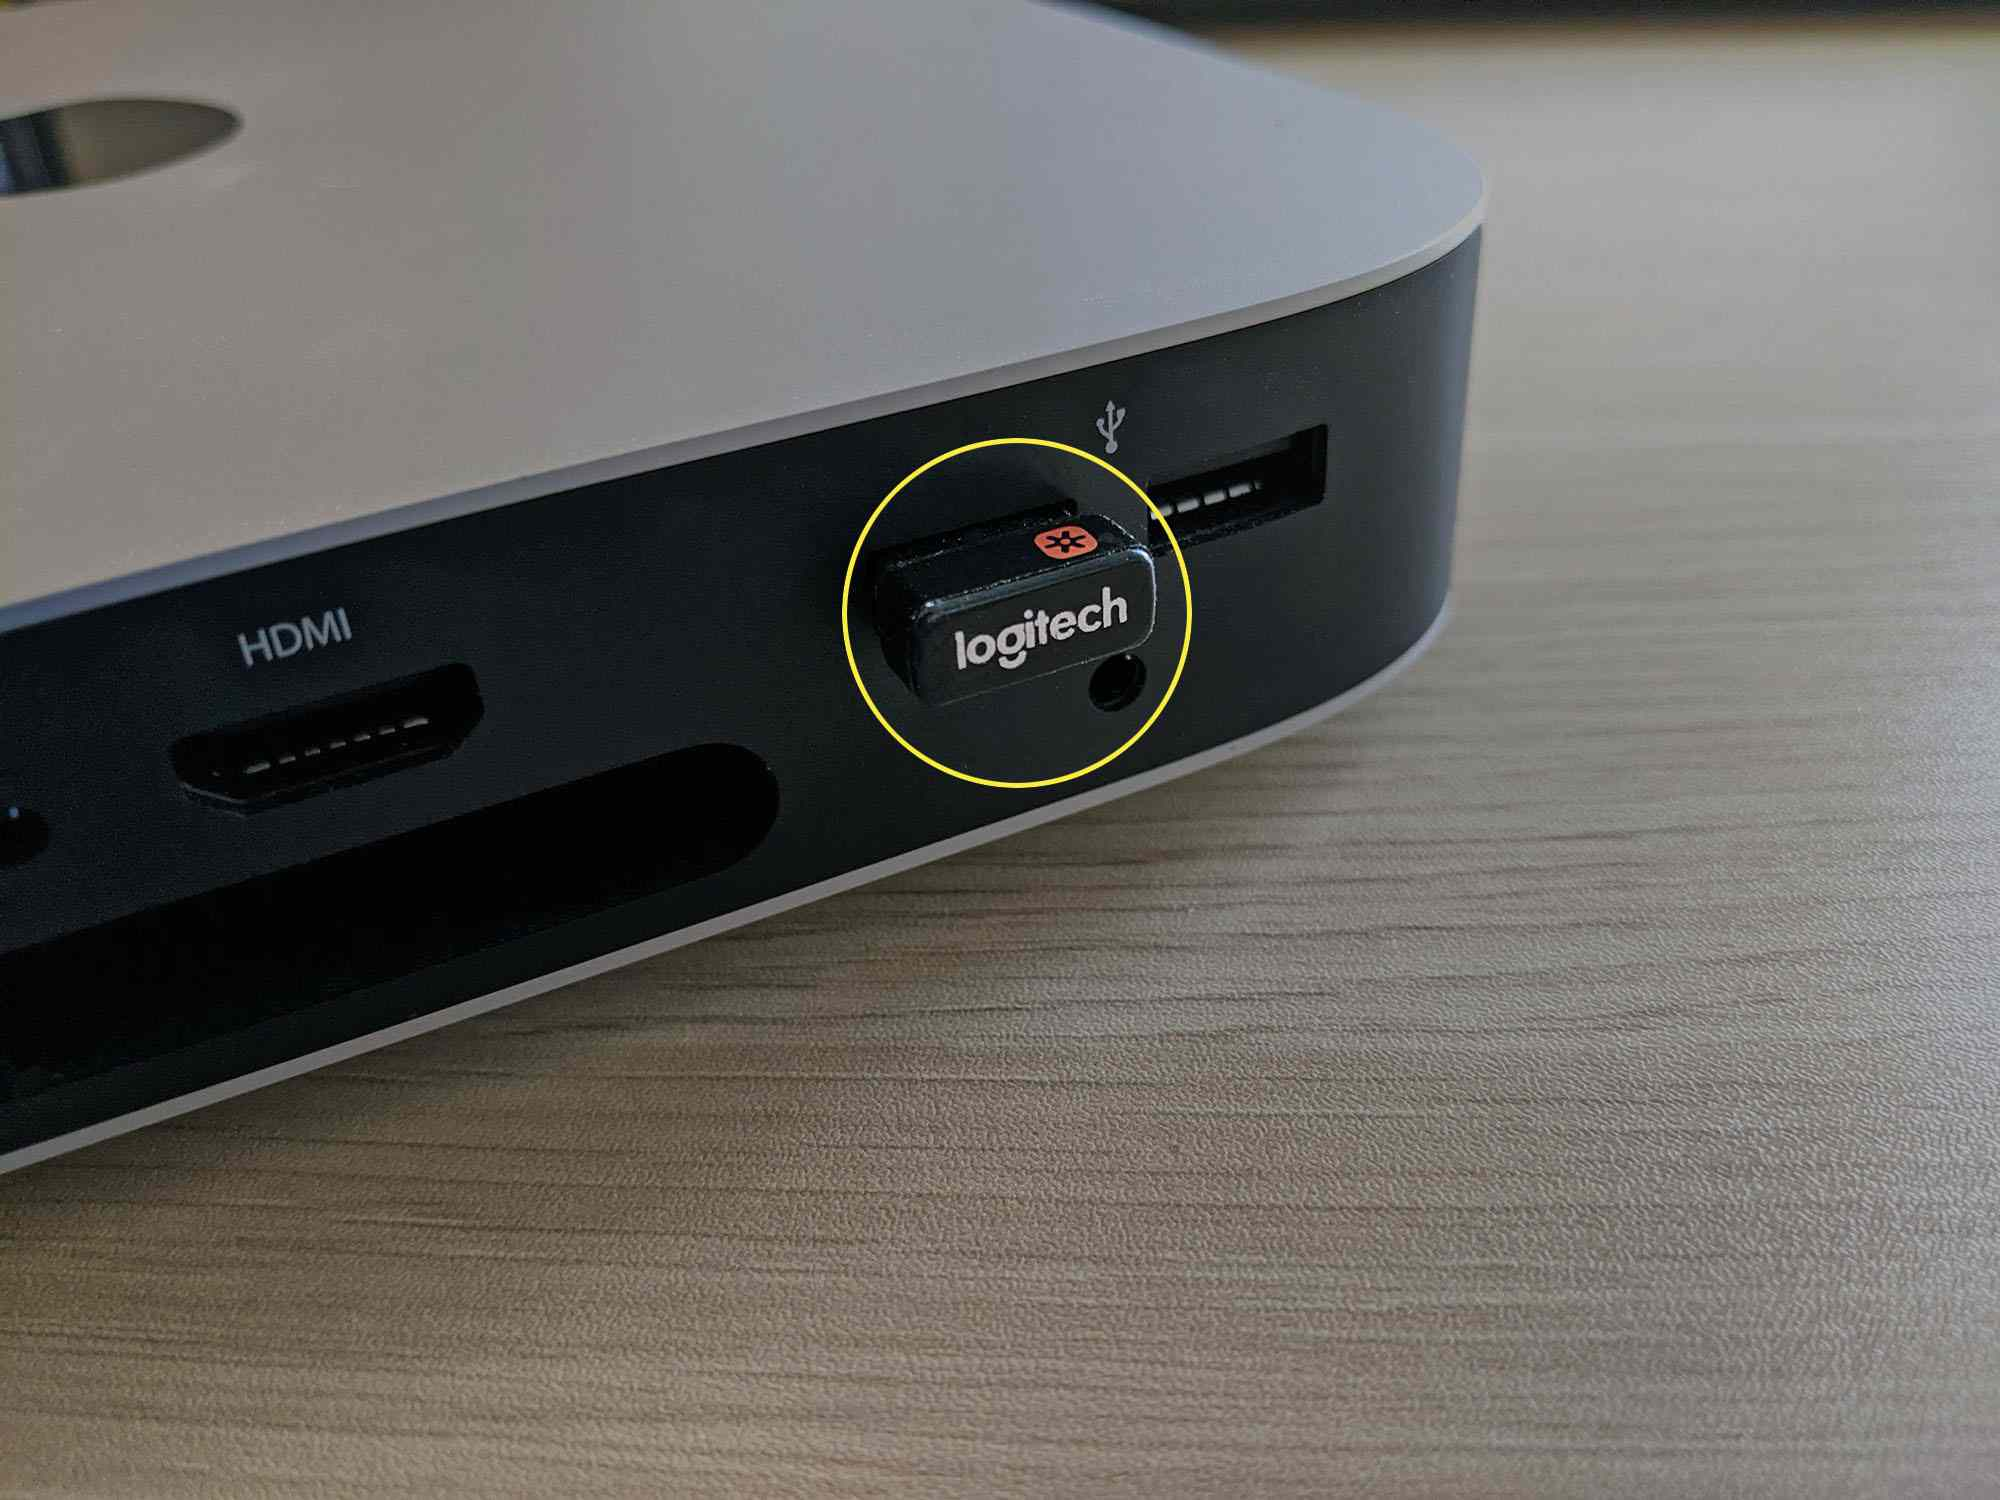 A Logitech Unifying receiver inserted into a Mac Mini.